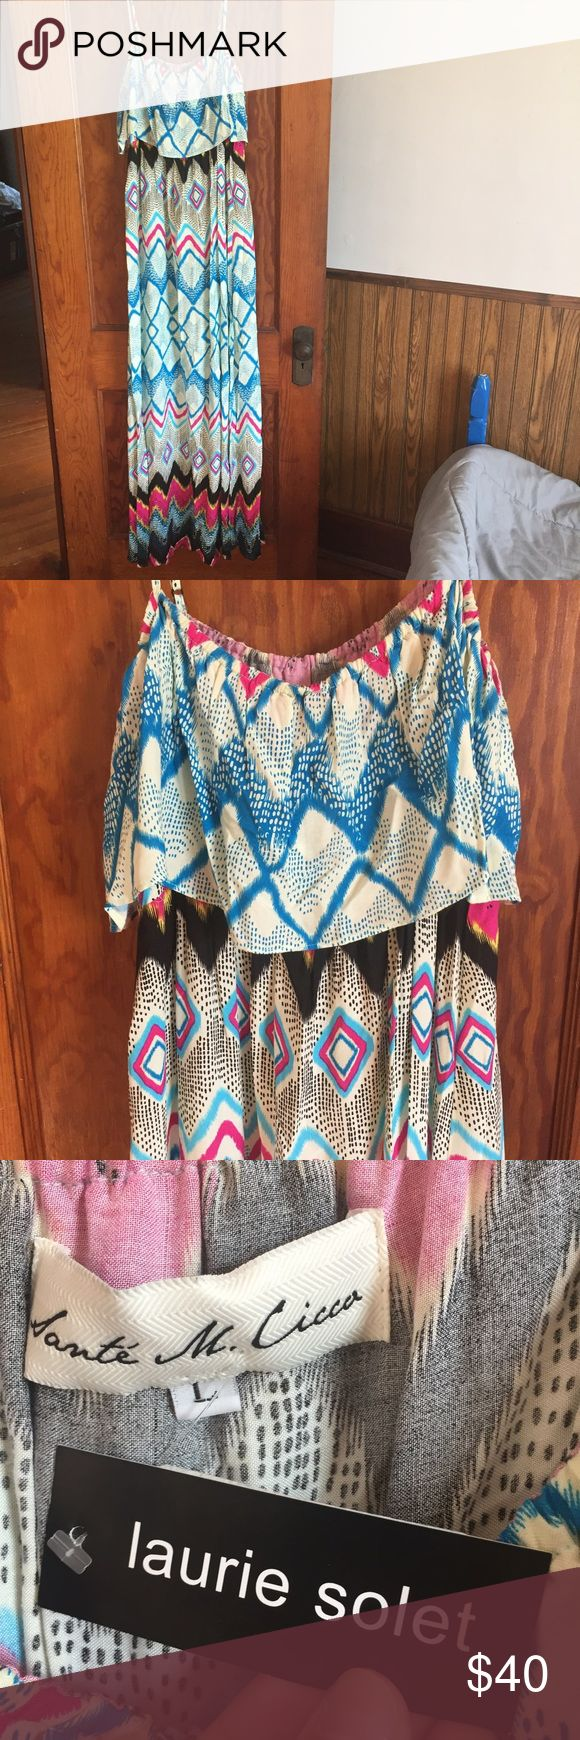 Tribal Maxi Dress from Nordstroms Bought at Nordstroms. New with tags. Hangs super nice! Nordstrom Dresses Maxi